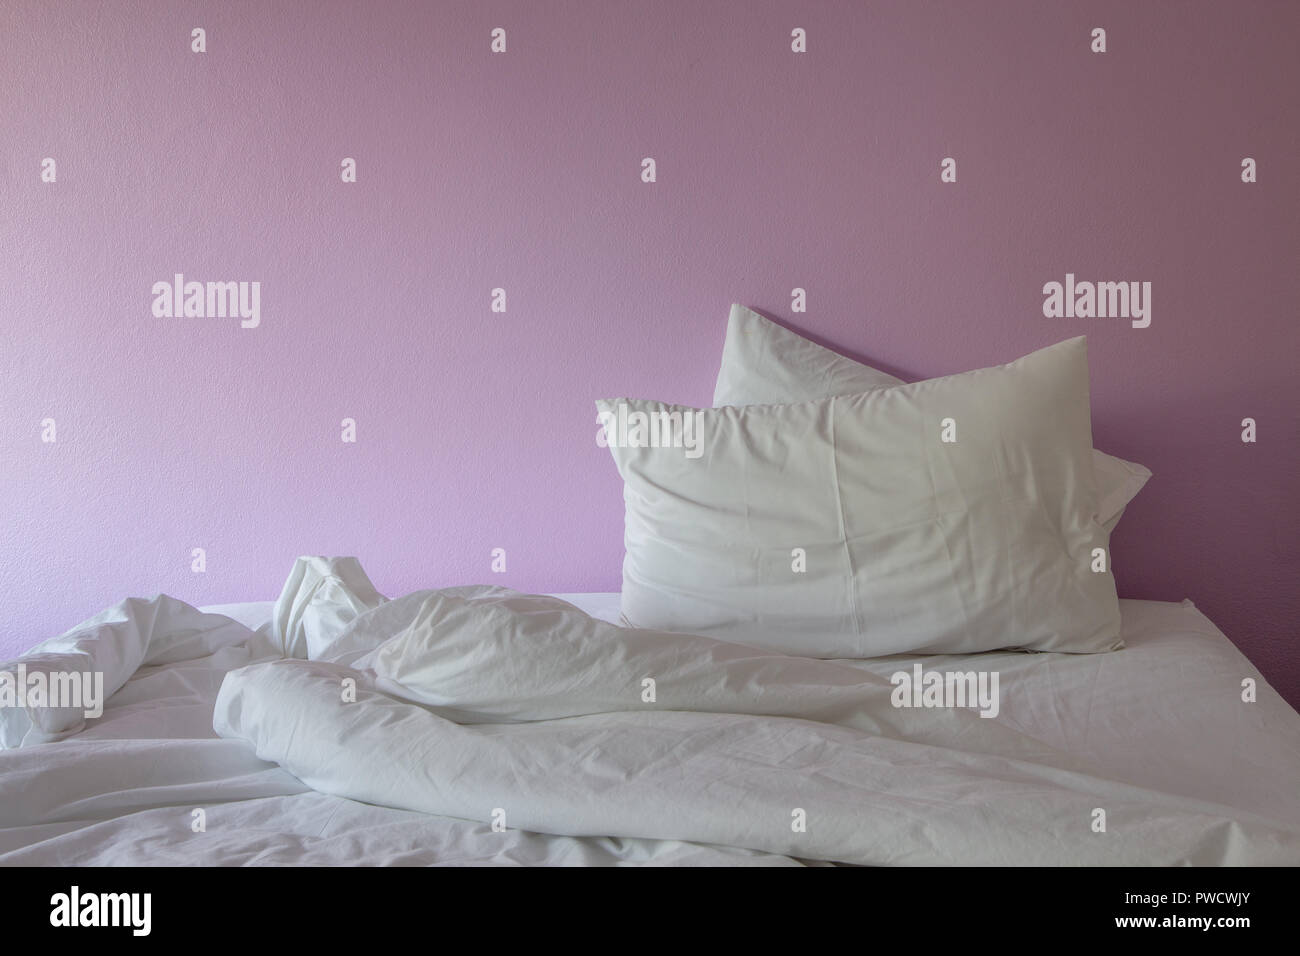 white wrinkle messy blanket and pillow on pink background. - Stock Image